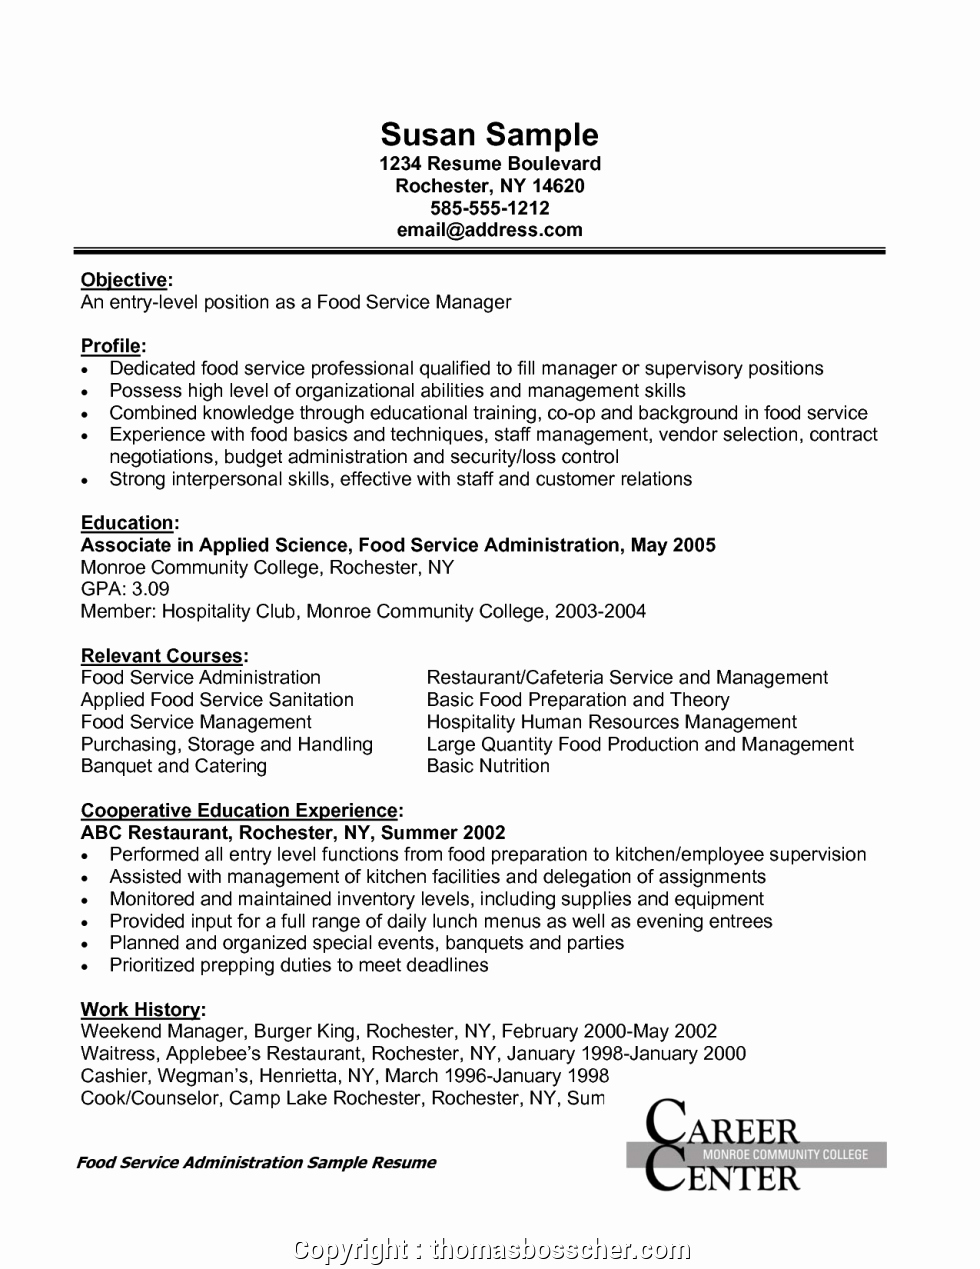 Food Service Manager Resume Fresh Create Sales Manager Resume Food Industry Catering Resume Good Food Service Administration Sales